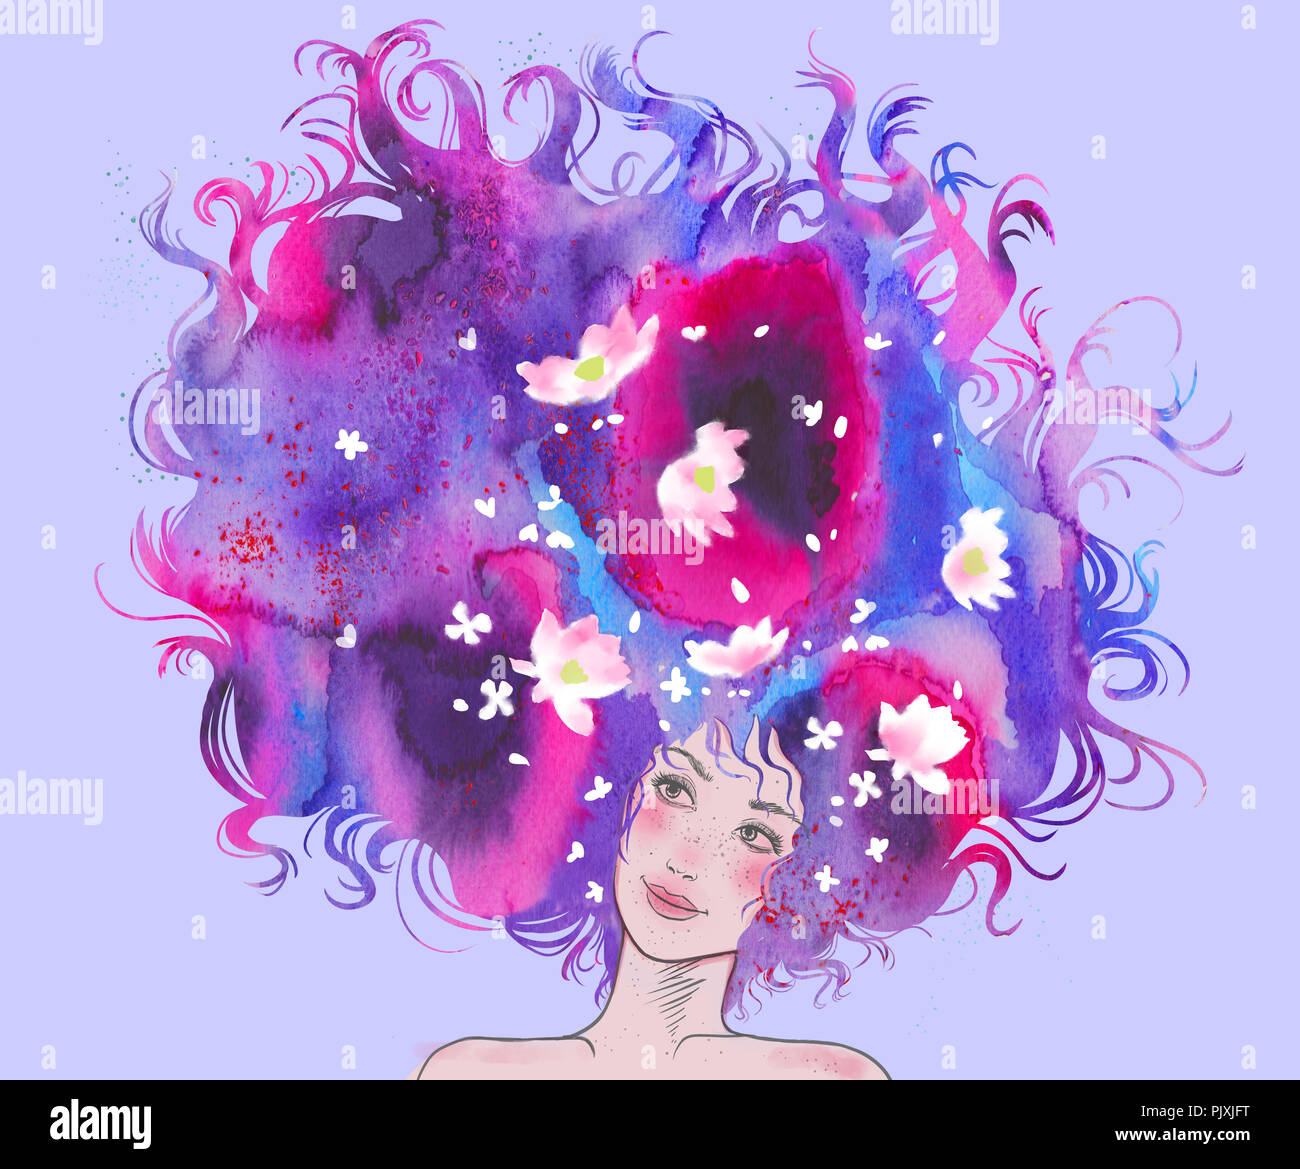 Illustration of a girl with a violet hair and white flowers - Stock Image